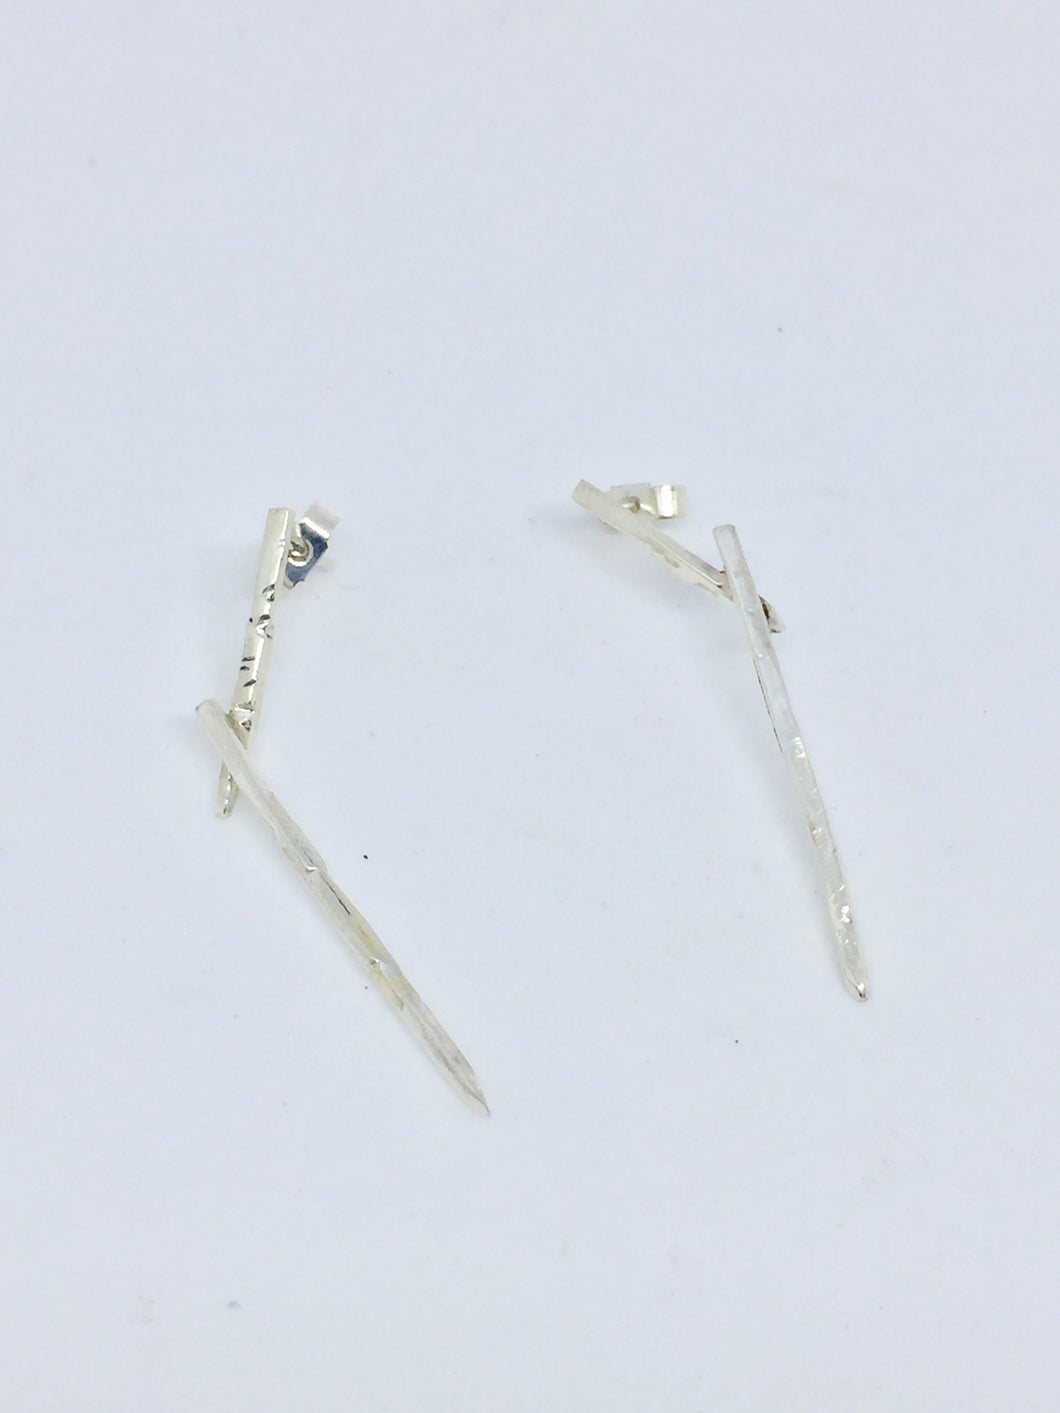 Splintered Light Earrings - 1